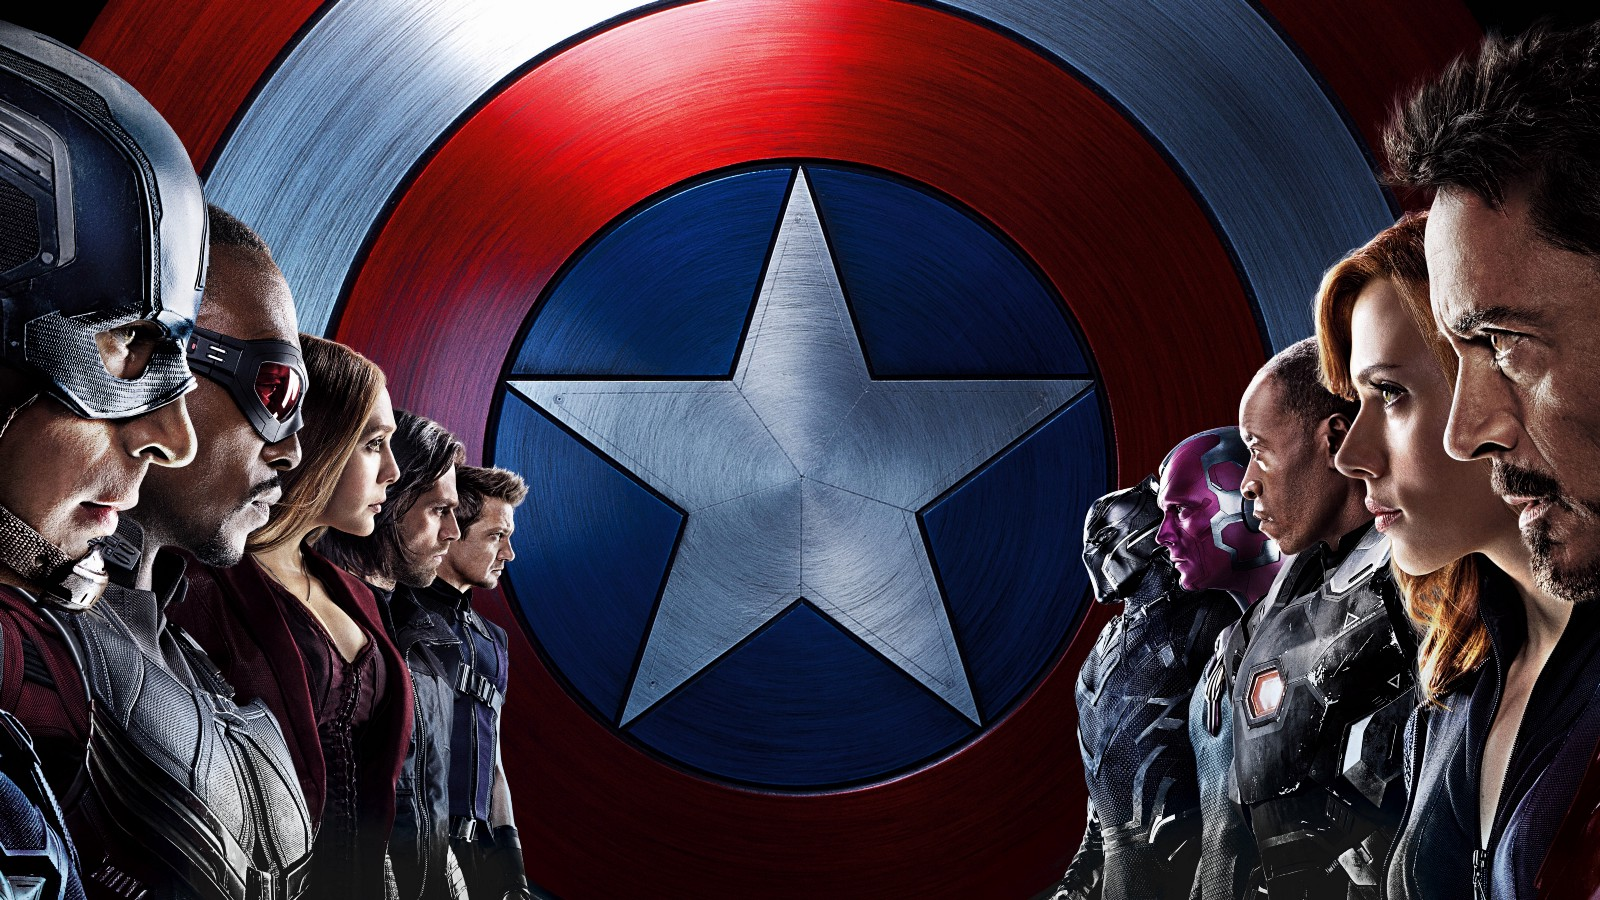 captain america: civil war ruined it for every superhero film that